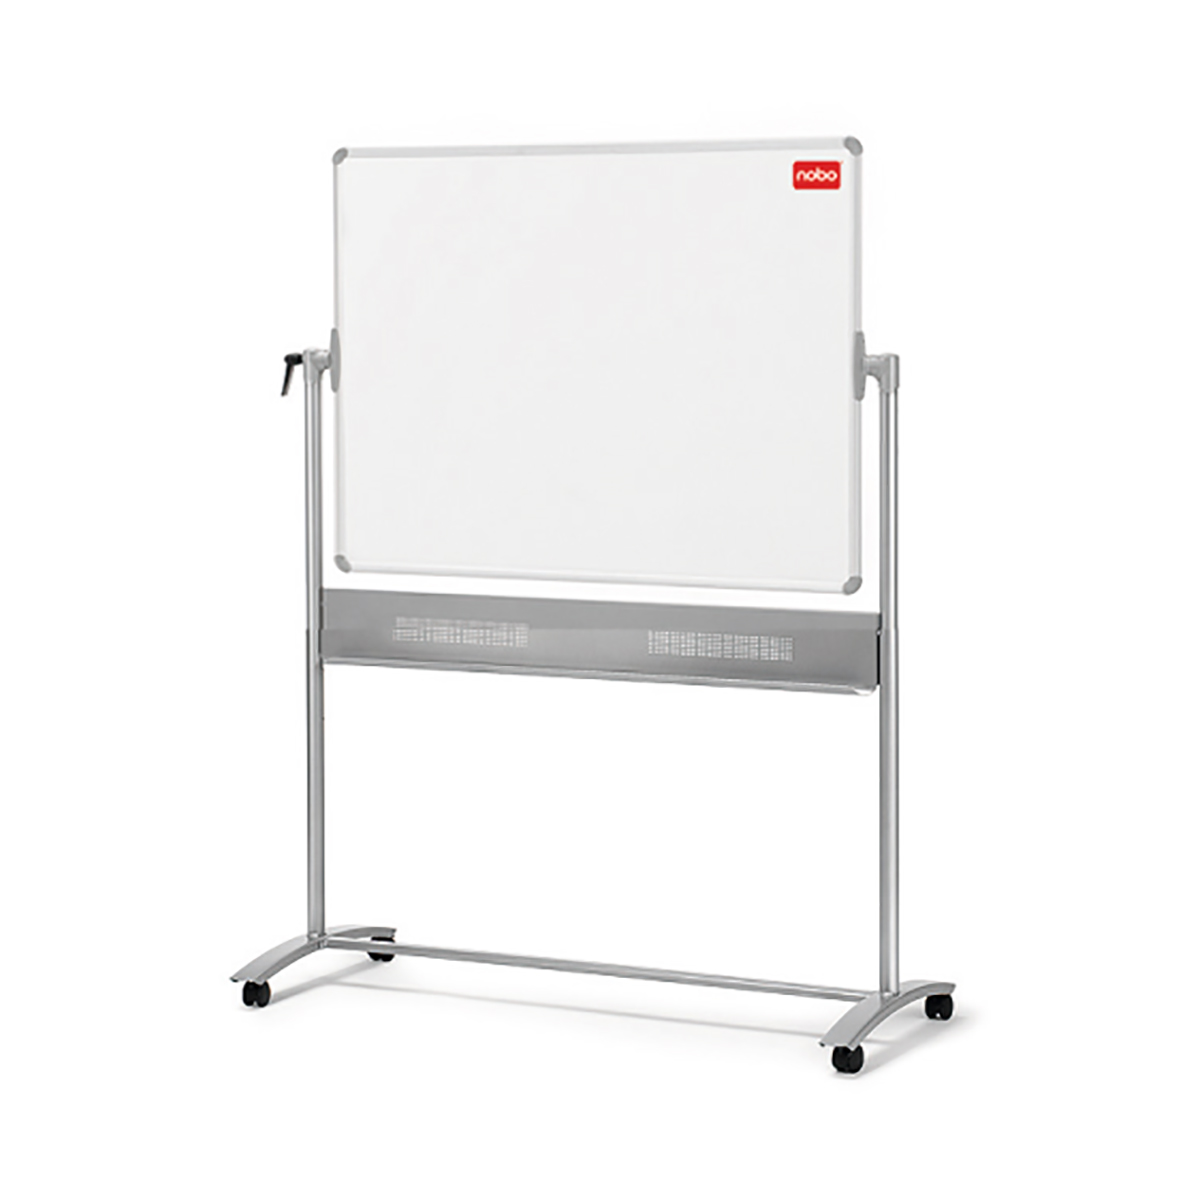 Nobo 1901029 Dual Sided Mobile Whiteboard 1200 x 900mm